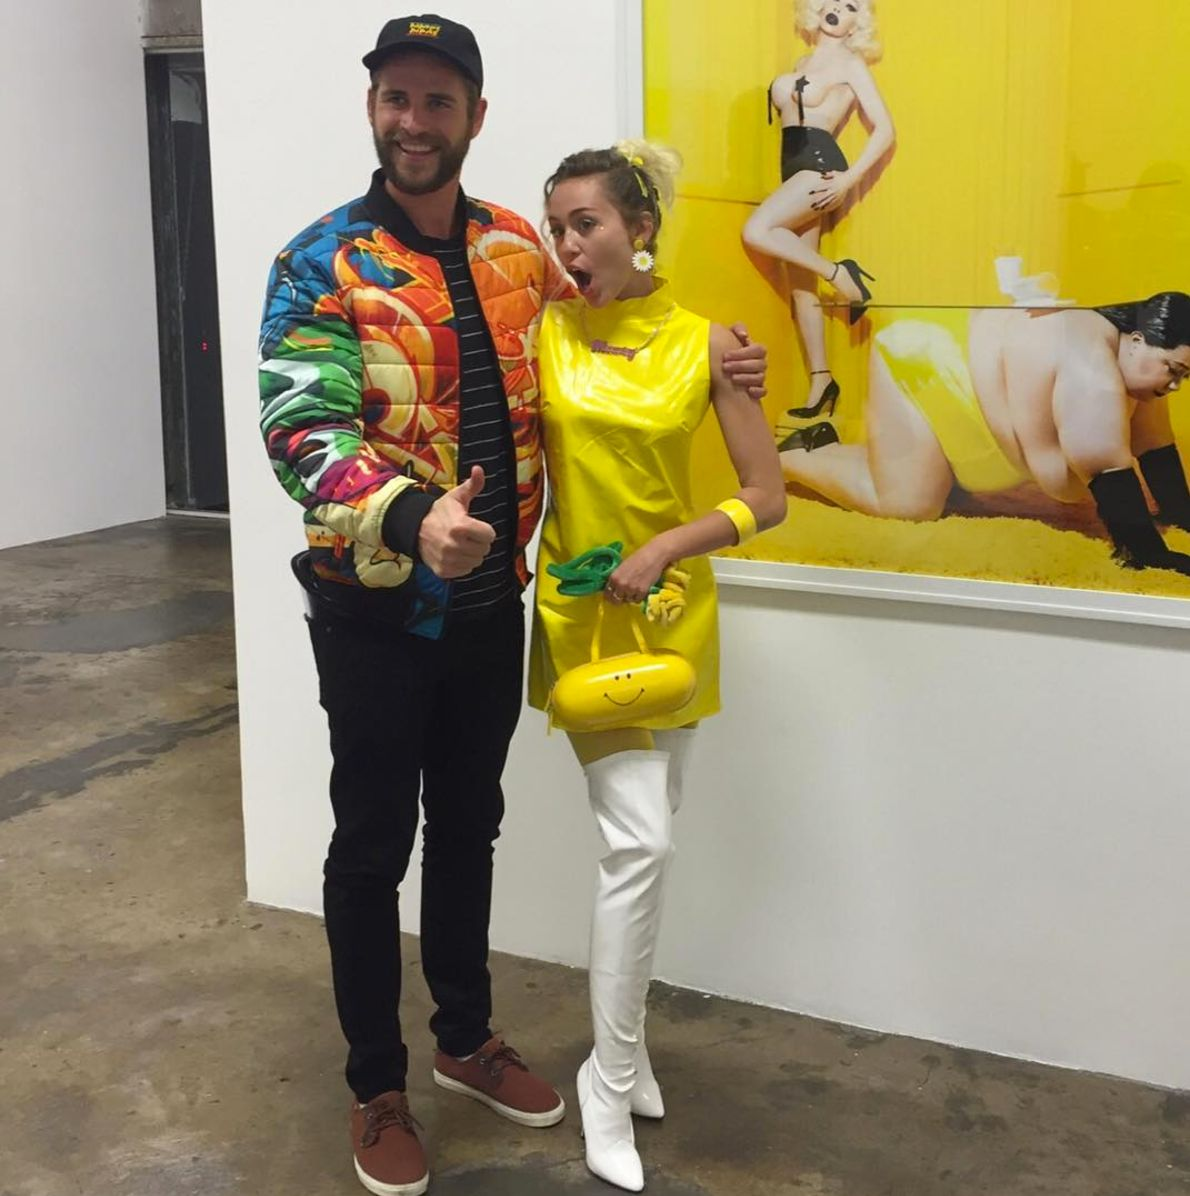 Miley Cyrus And Liam Hemsworth Step Out For Colorful Date Night In